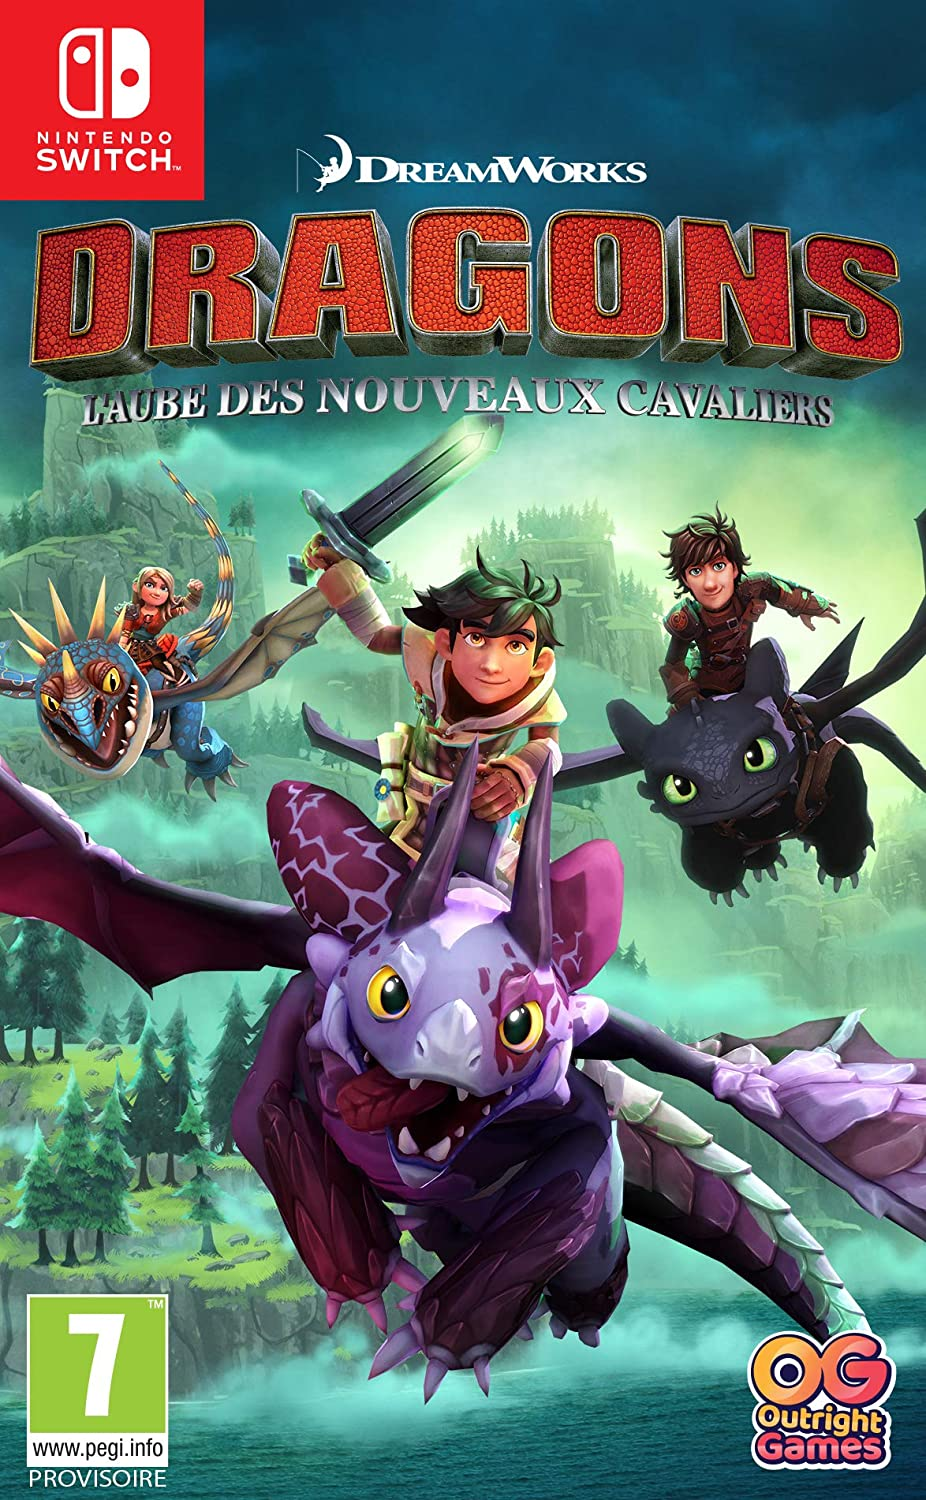 Dragons [SWITCH] : l'aube des nouveaux cavaliers | Outright Games